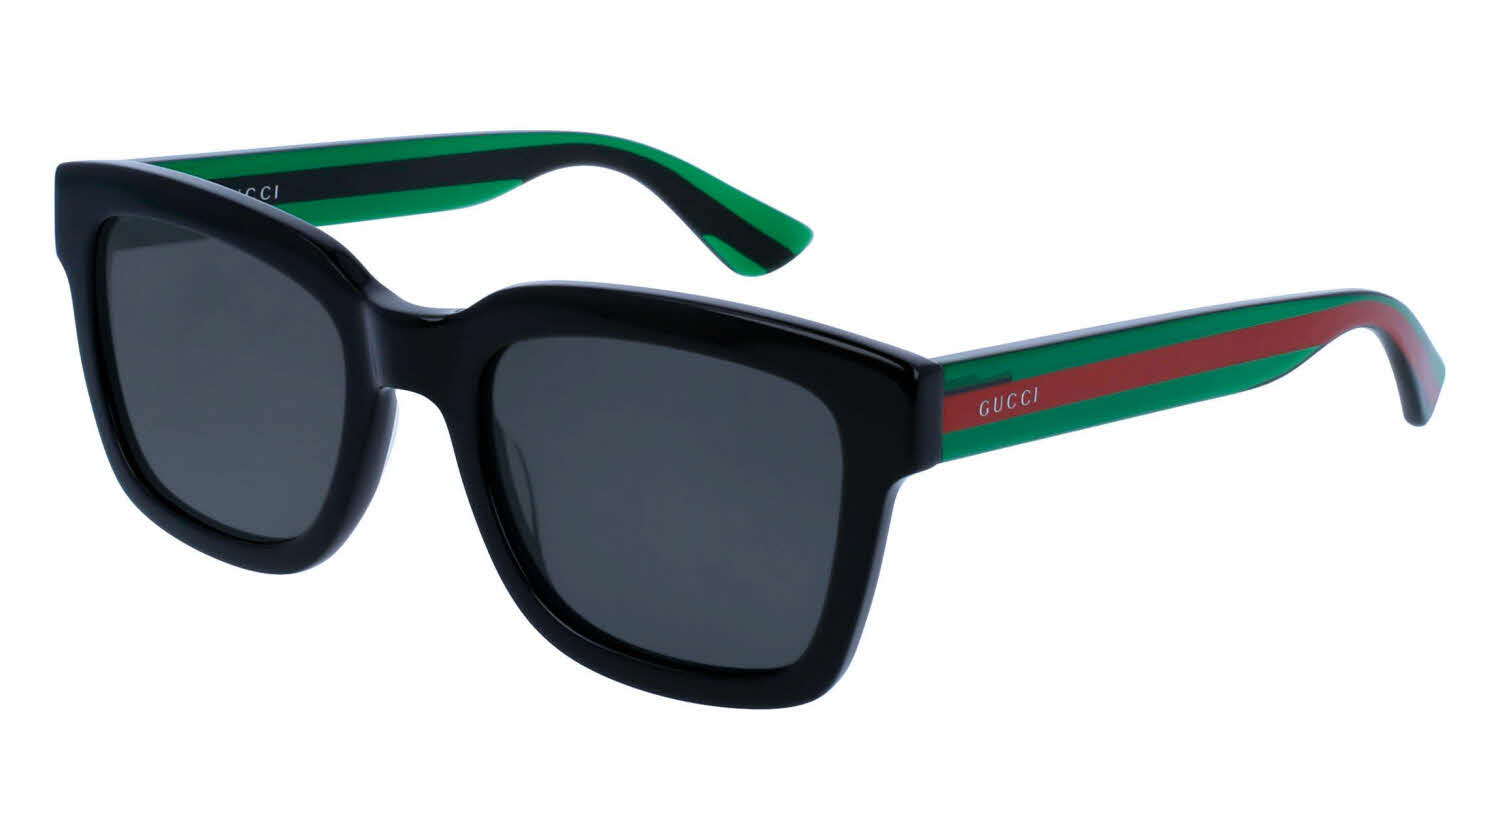 Gucci GG0001S Prescription Sunglasses